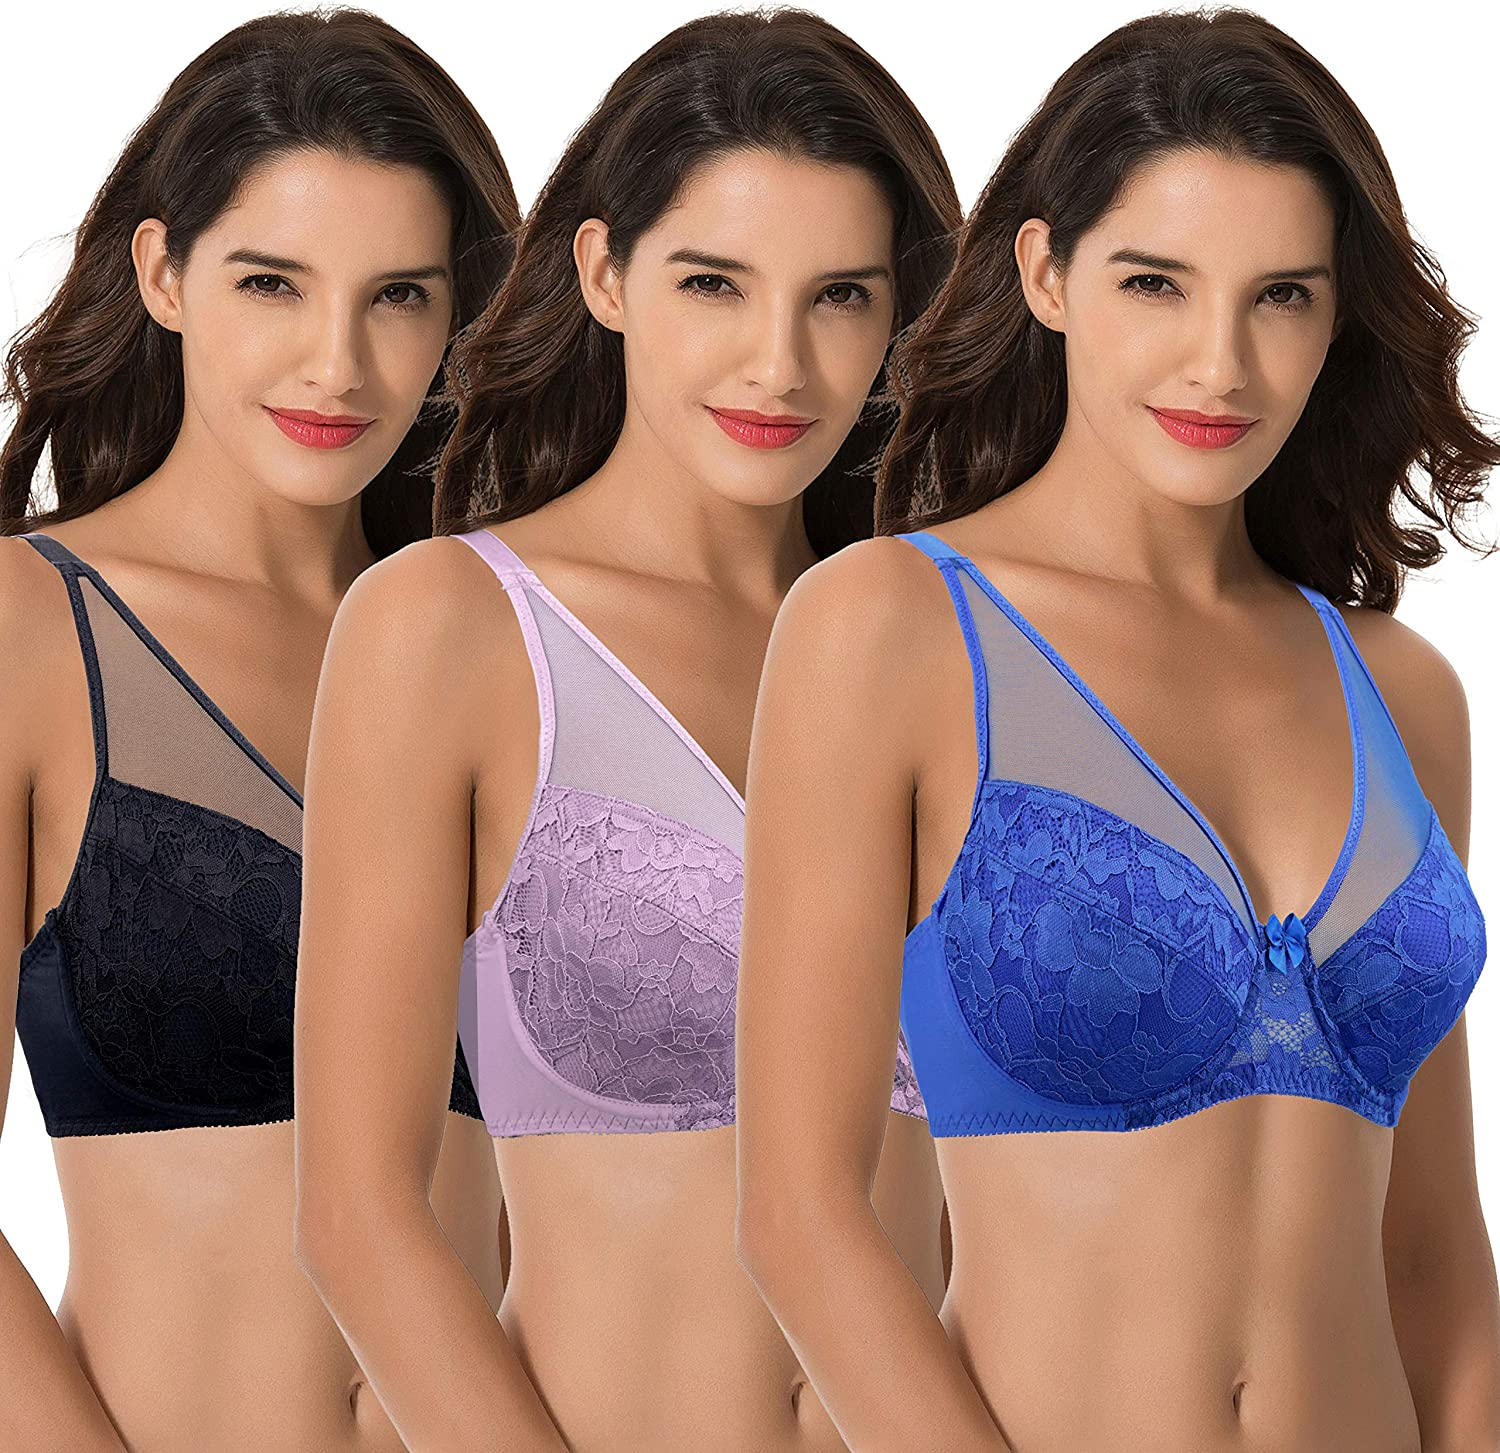 Curve Muse Womens Plus Size Minimizer Unlined Underwire Full Coverage Bra